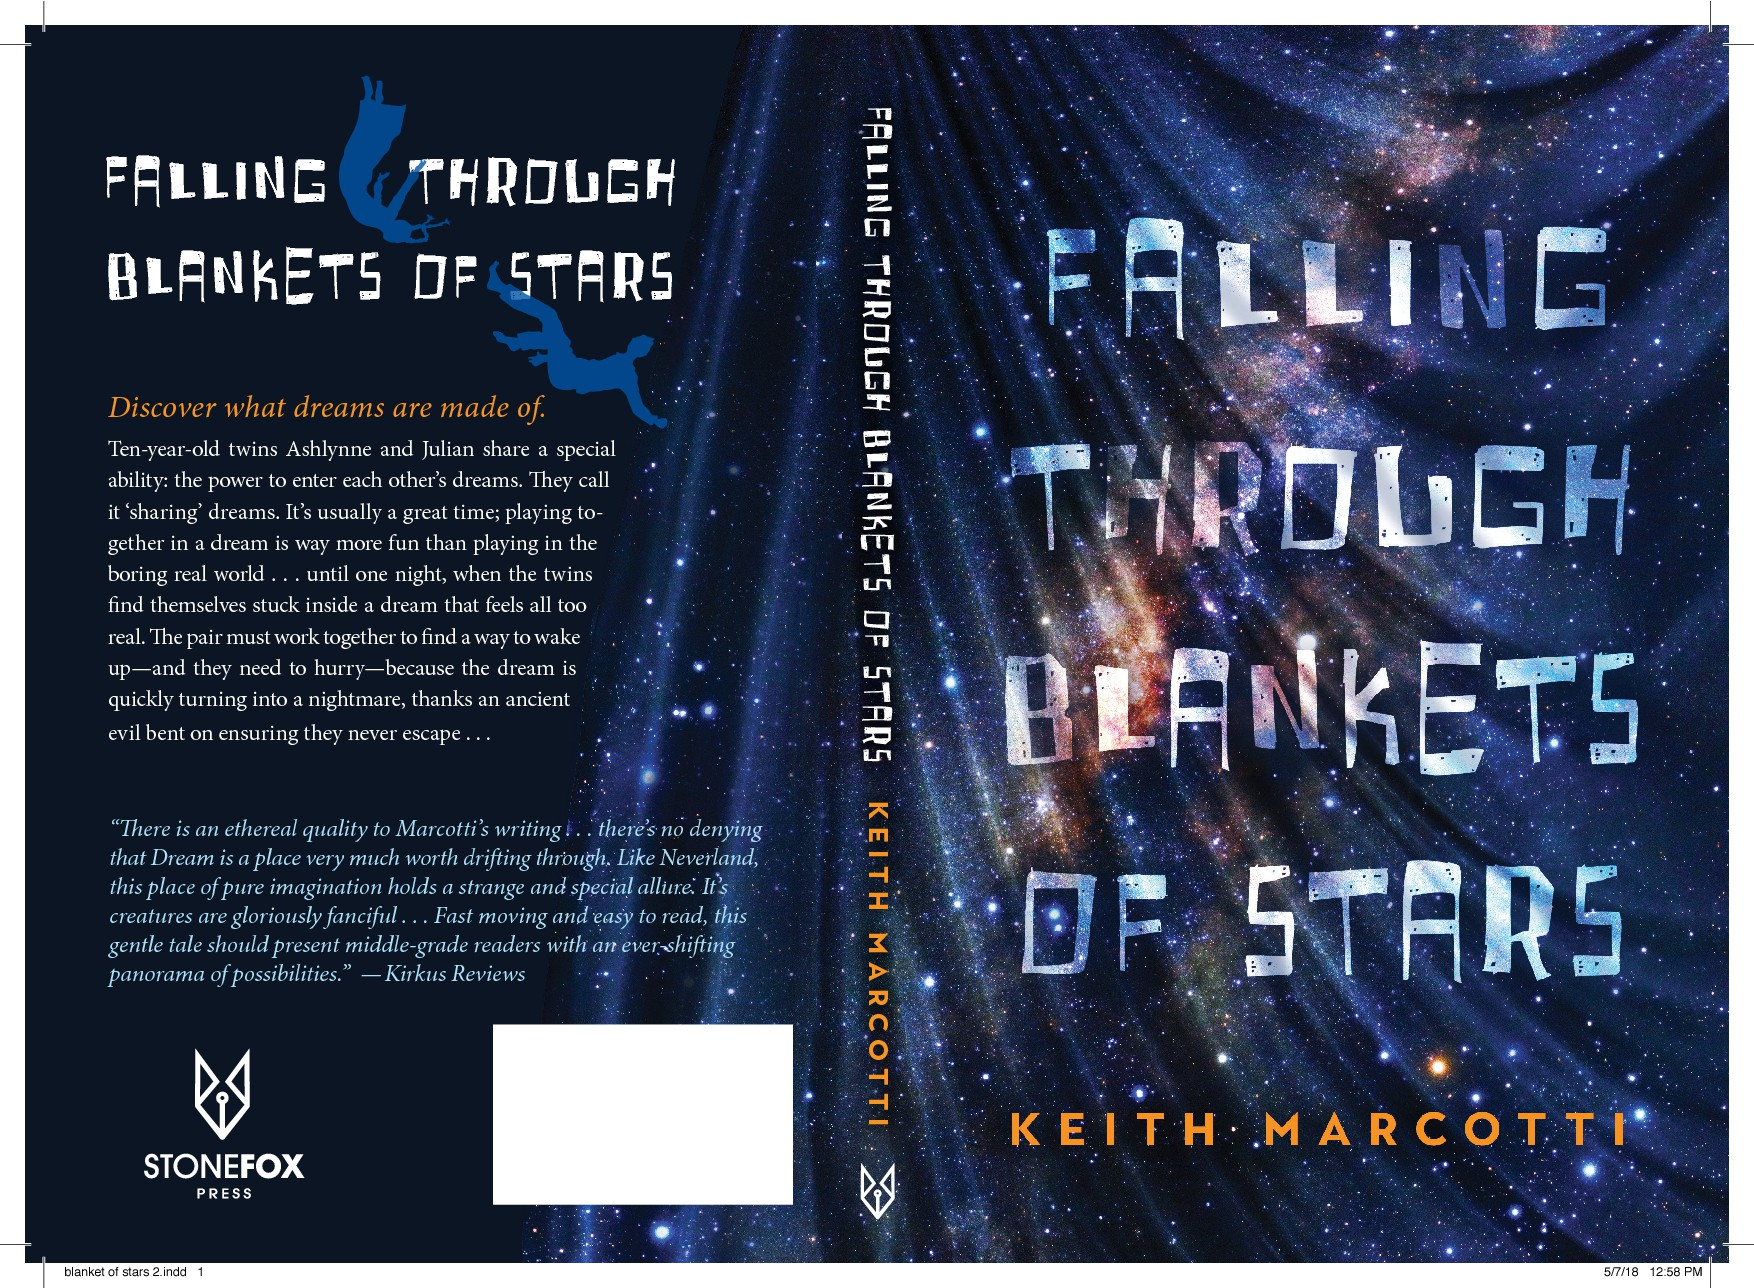 CREATE 'FALLING THROUGH BLANKETS OF STARS' (FICTION) BOOK COVER!!